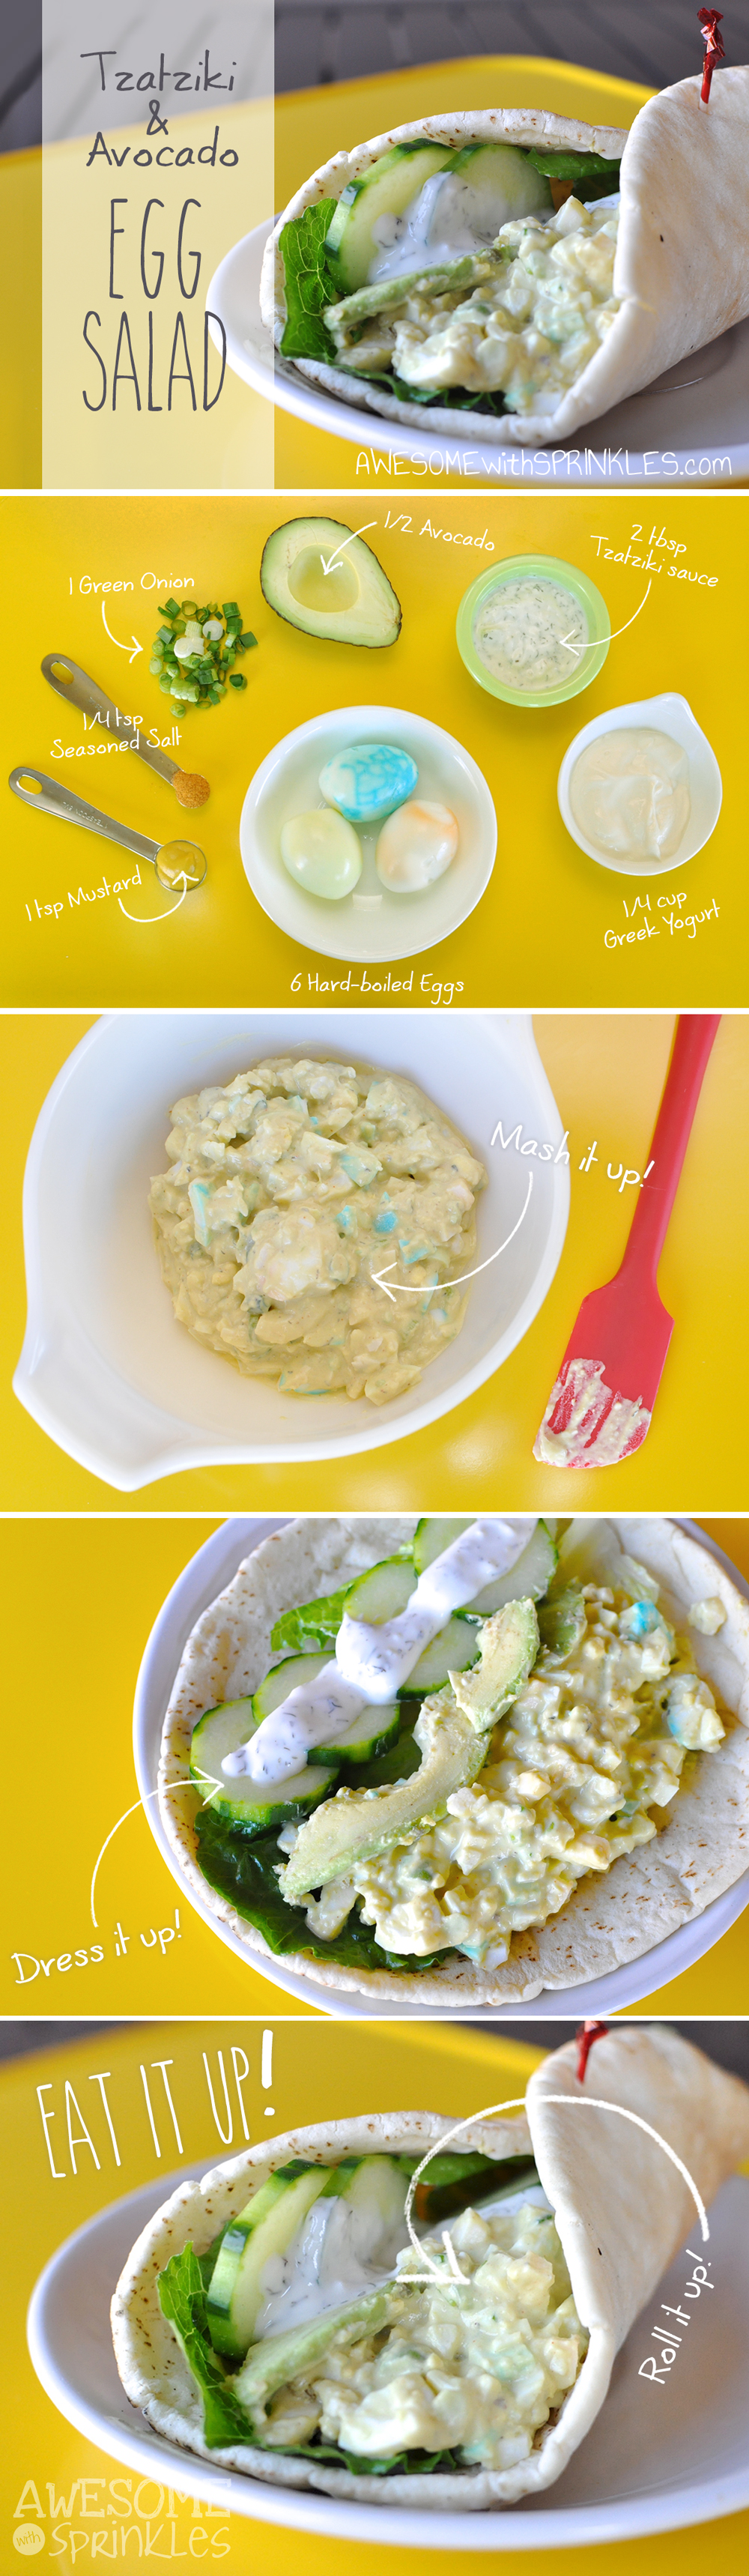 Tzatziki and Avocado Egg Salad | Awesome with Sprinkles